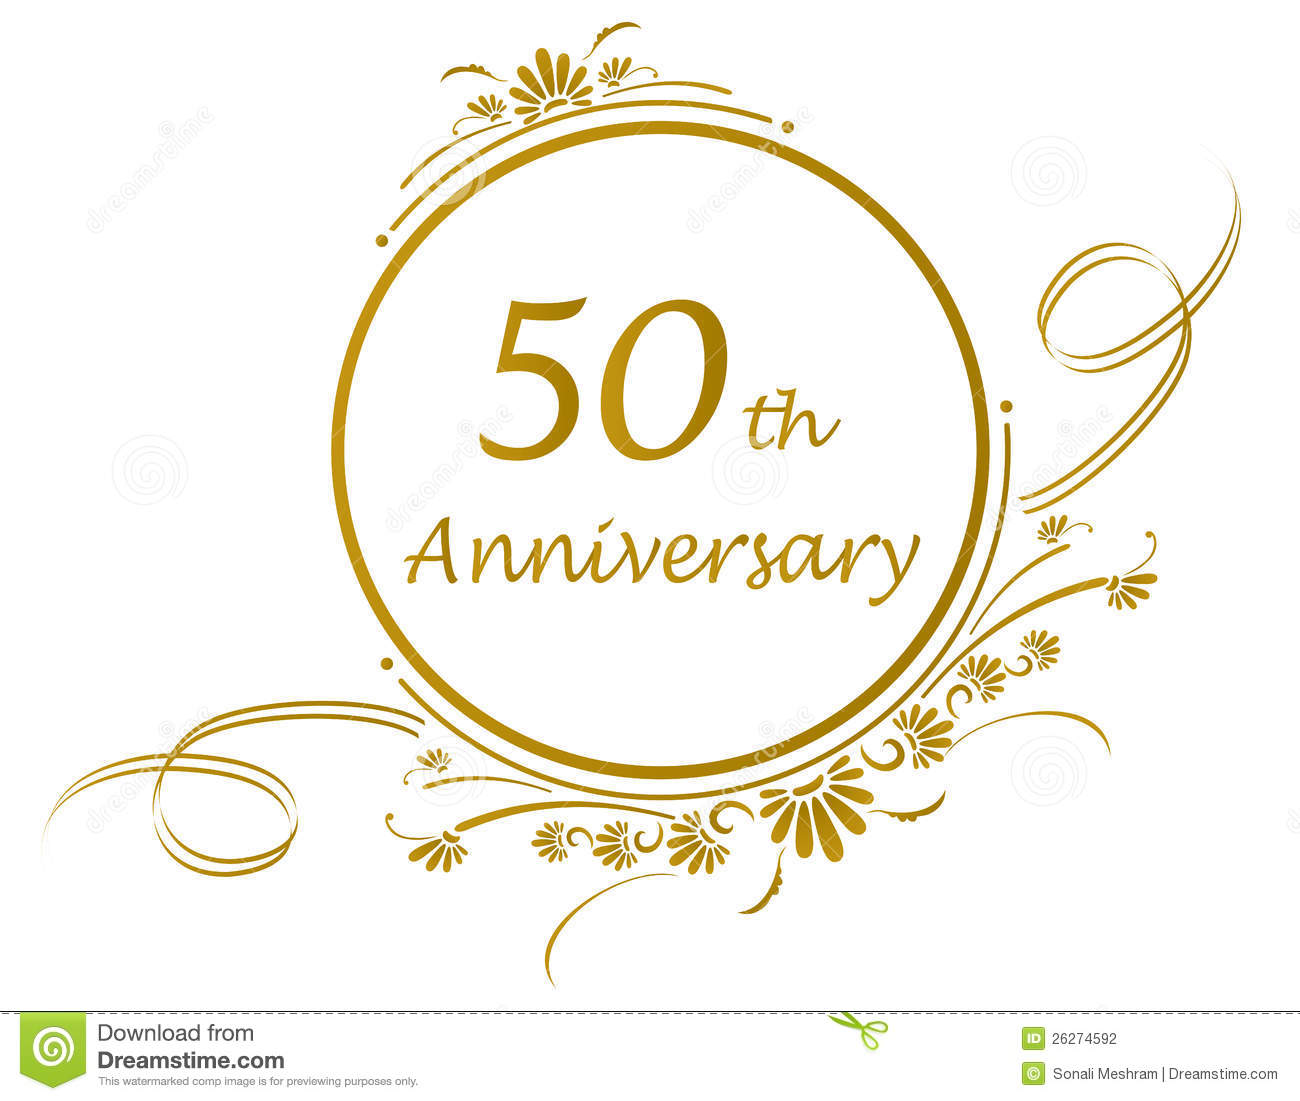 50th Or Golden Anniversary Of A Marriage Or Business Vector Available